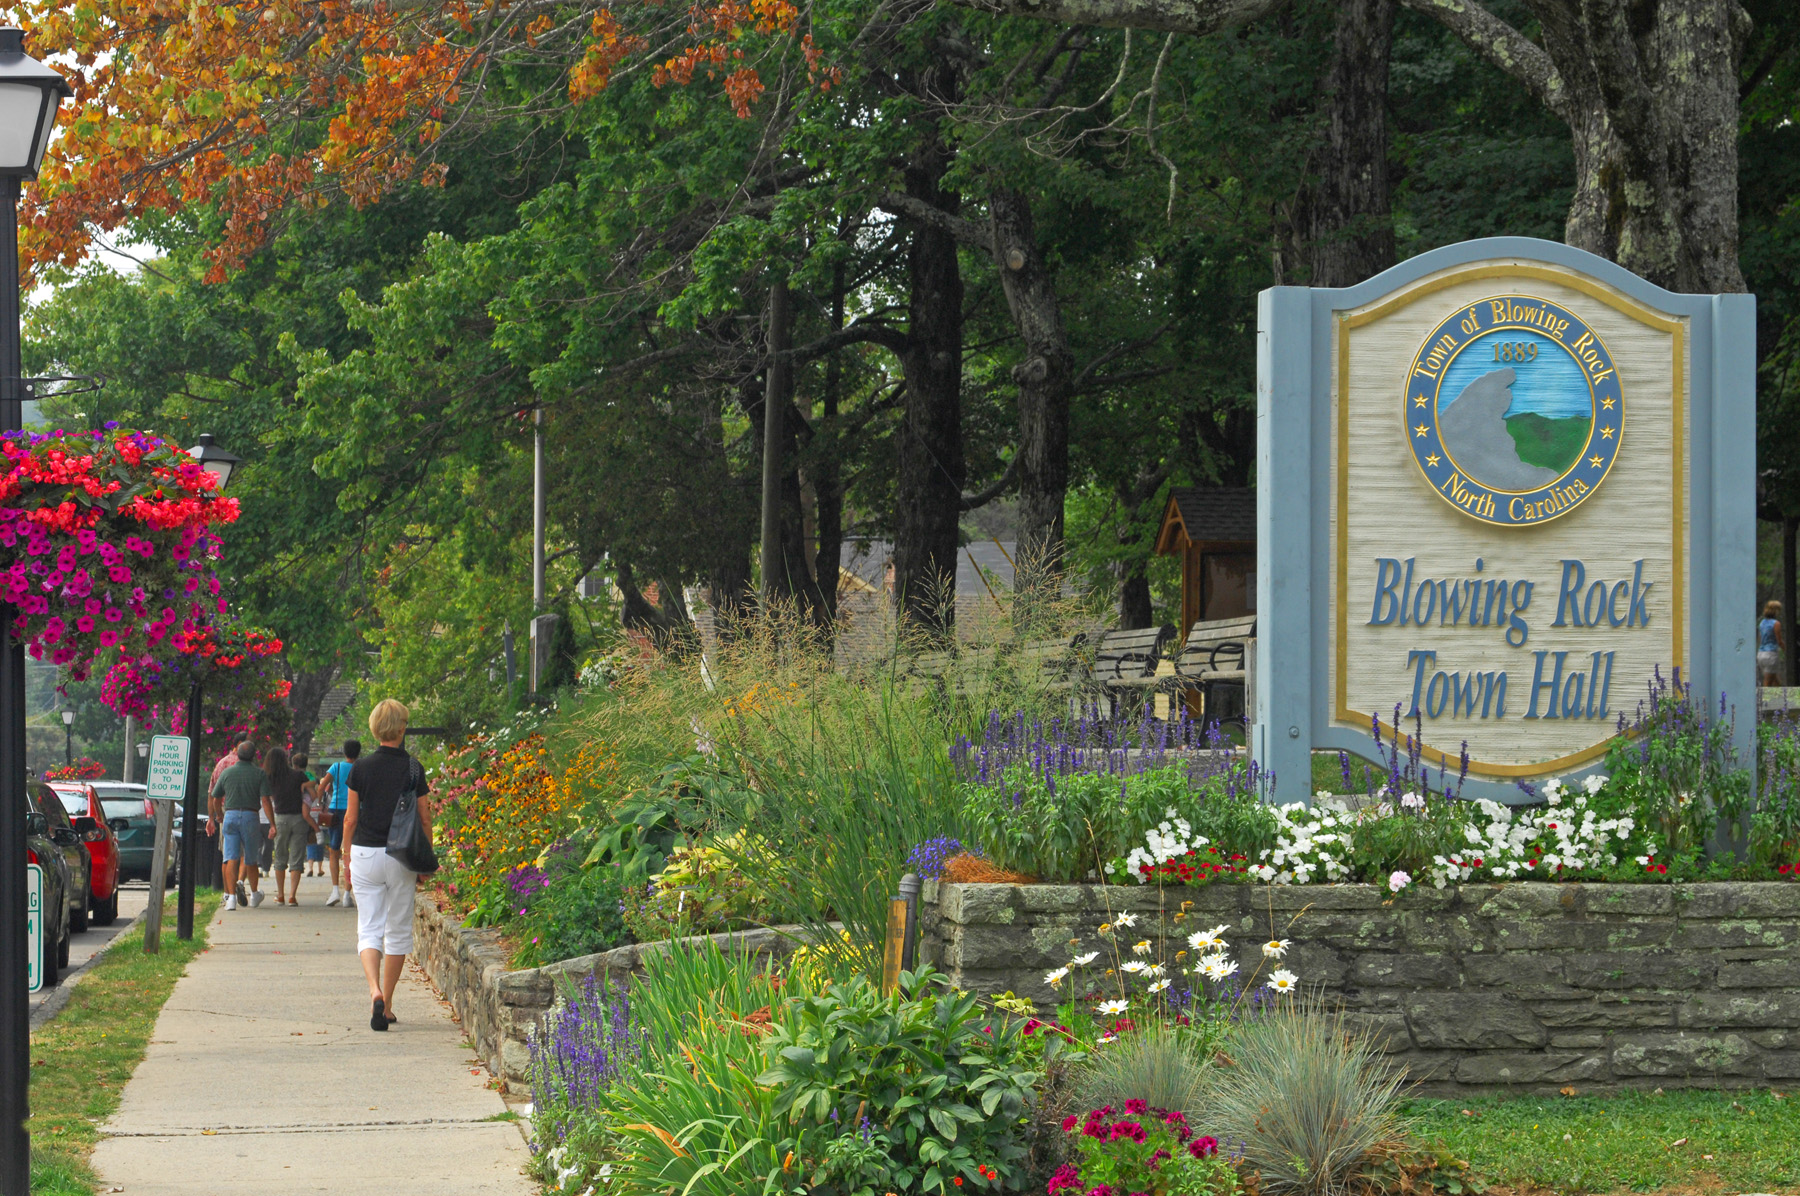 New Art Events This Summer in Blowing Rock